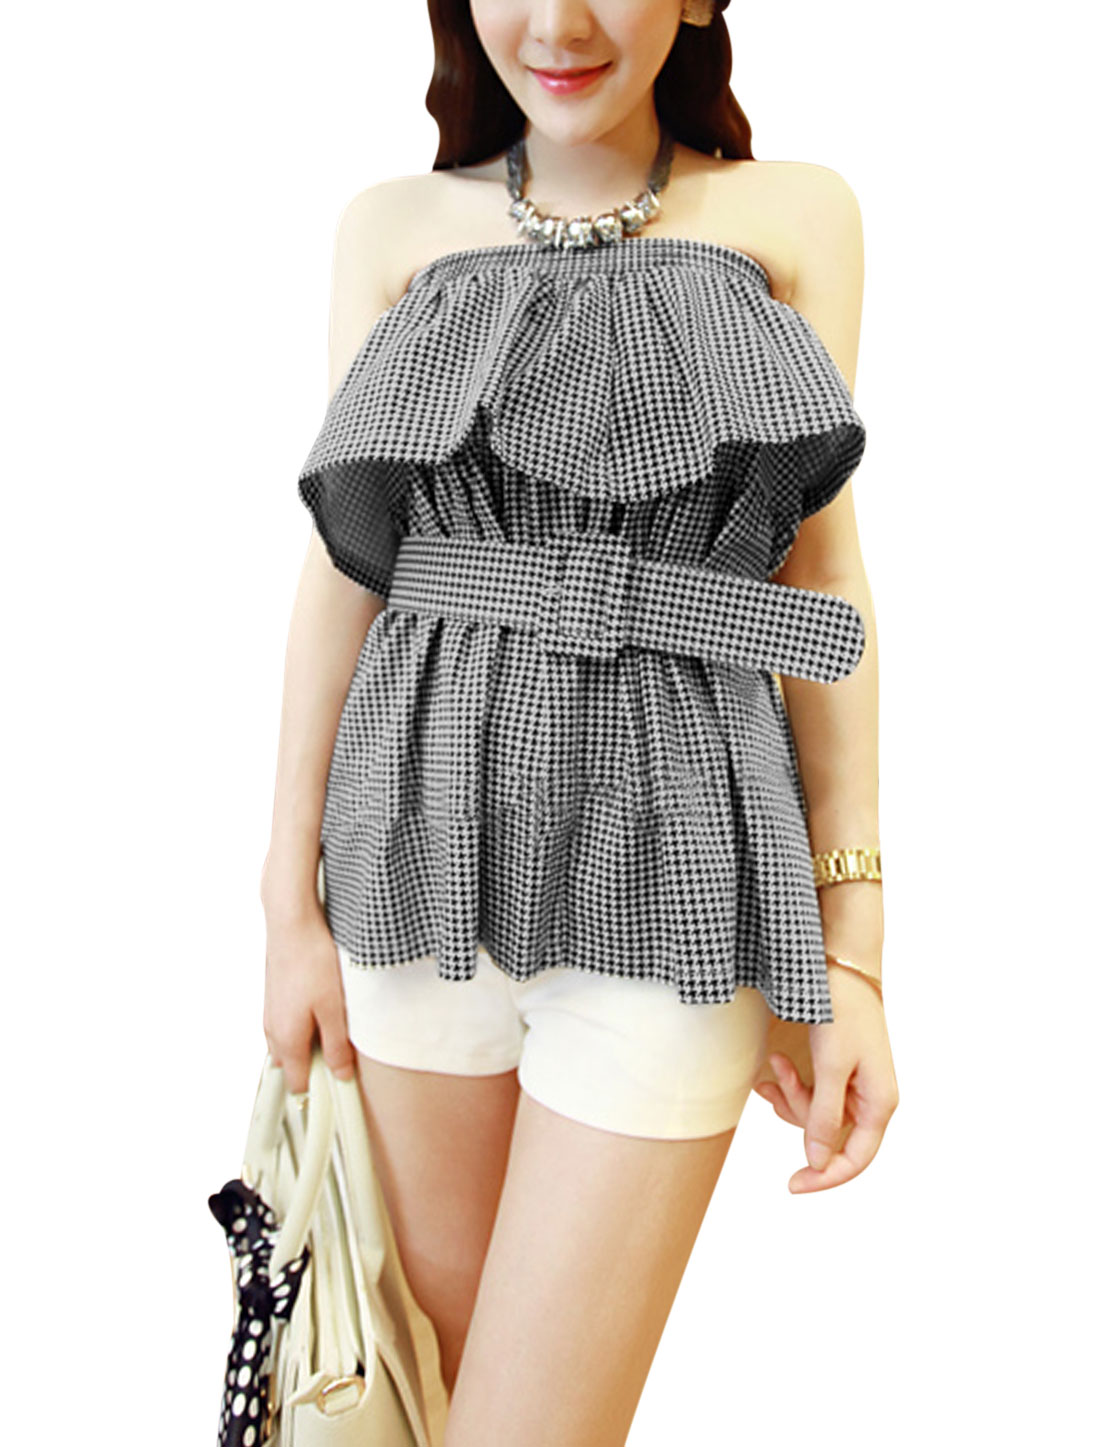 Lady Strapless Flouncing Design Houndstooth Prints Top w Belt Black White S